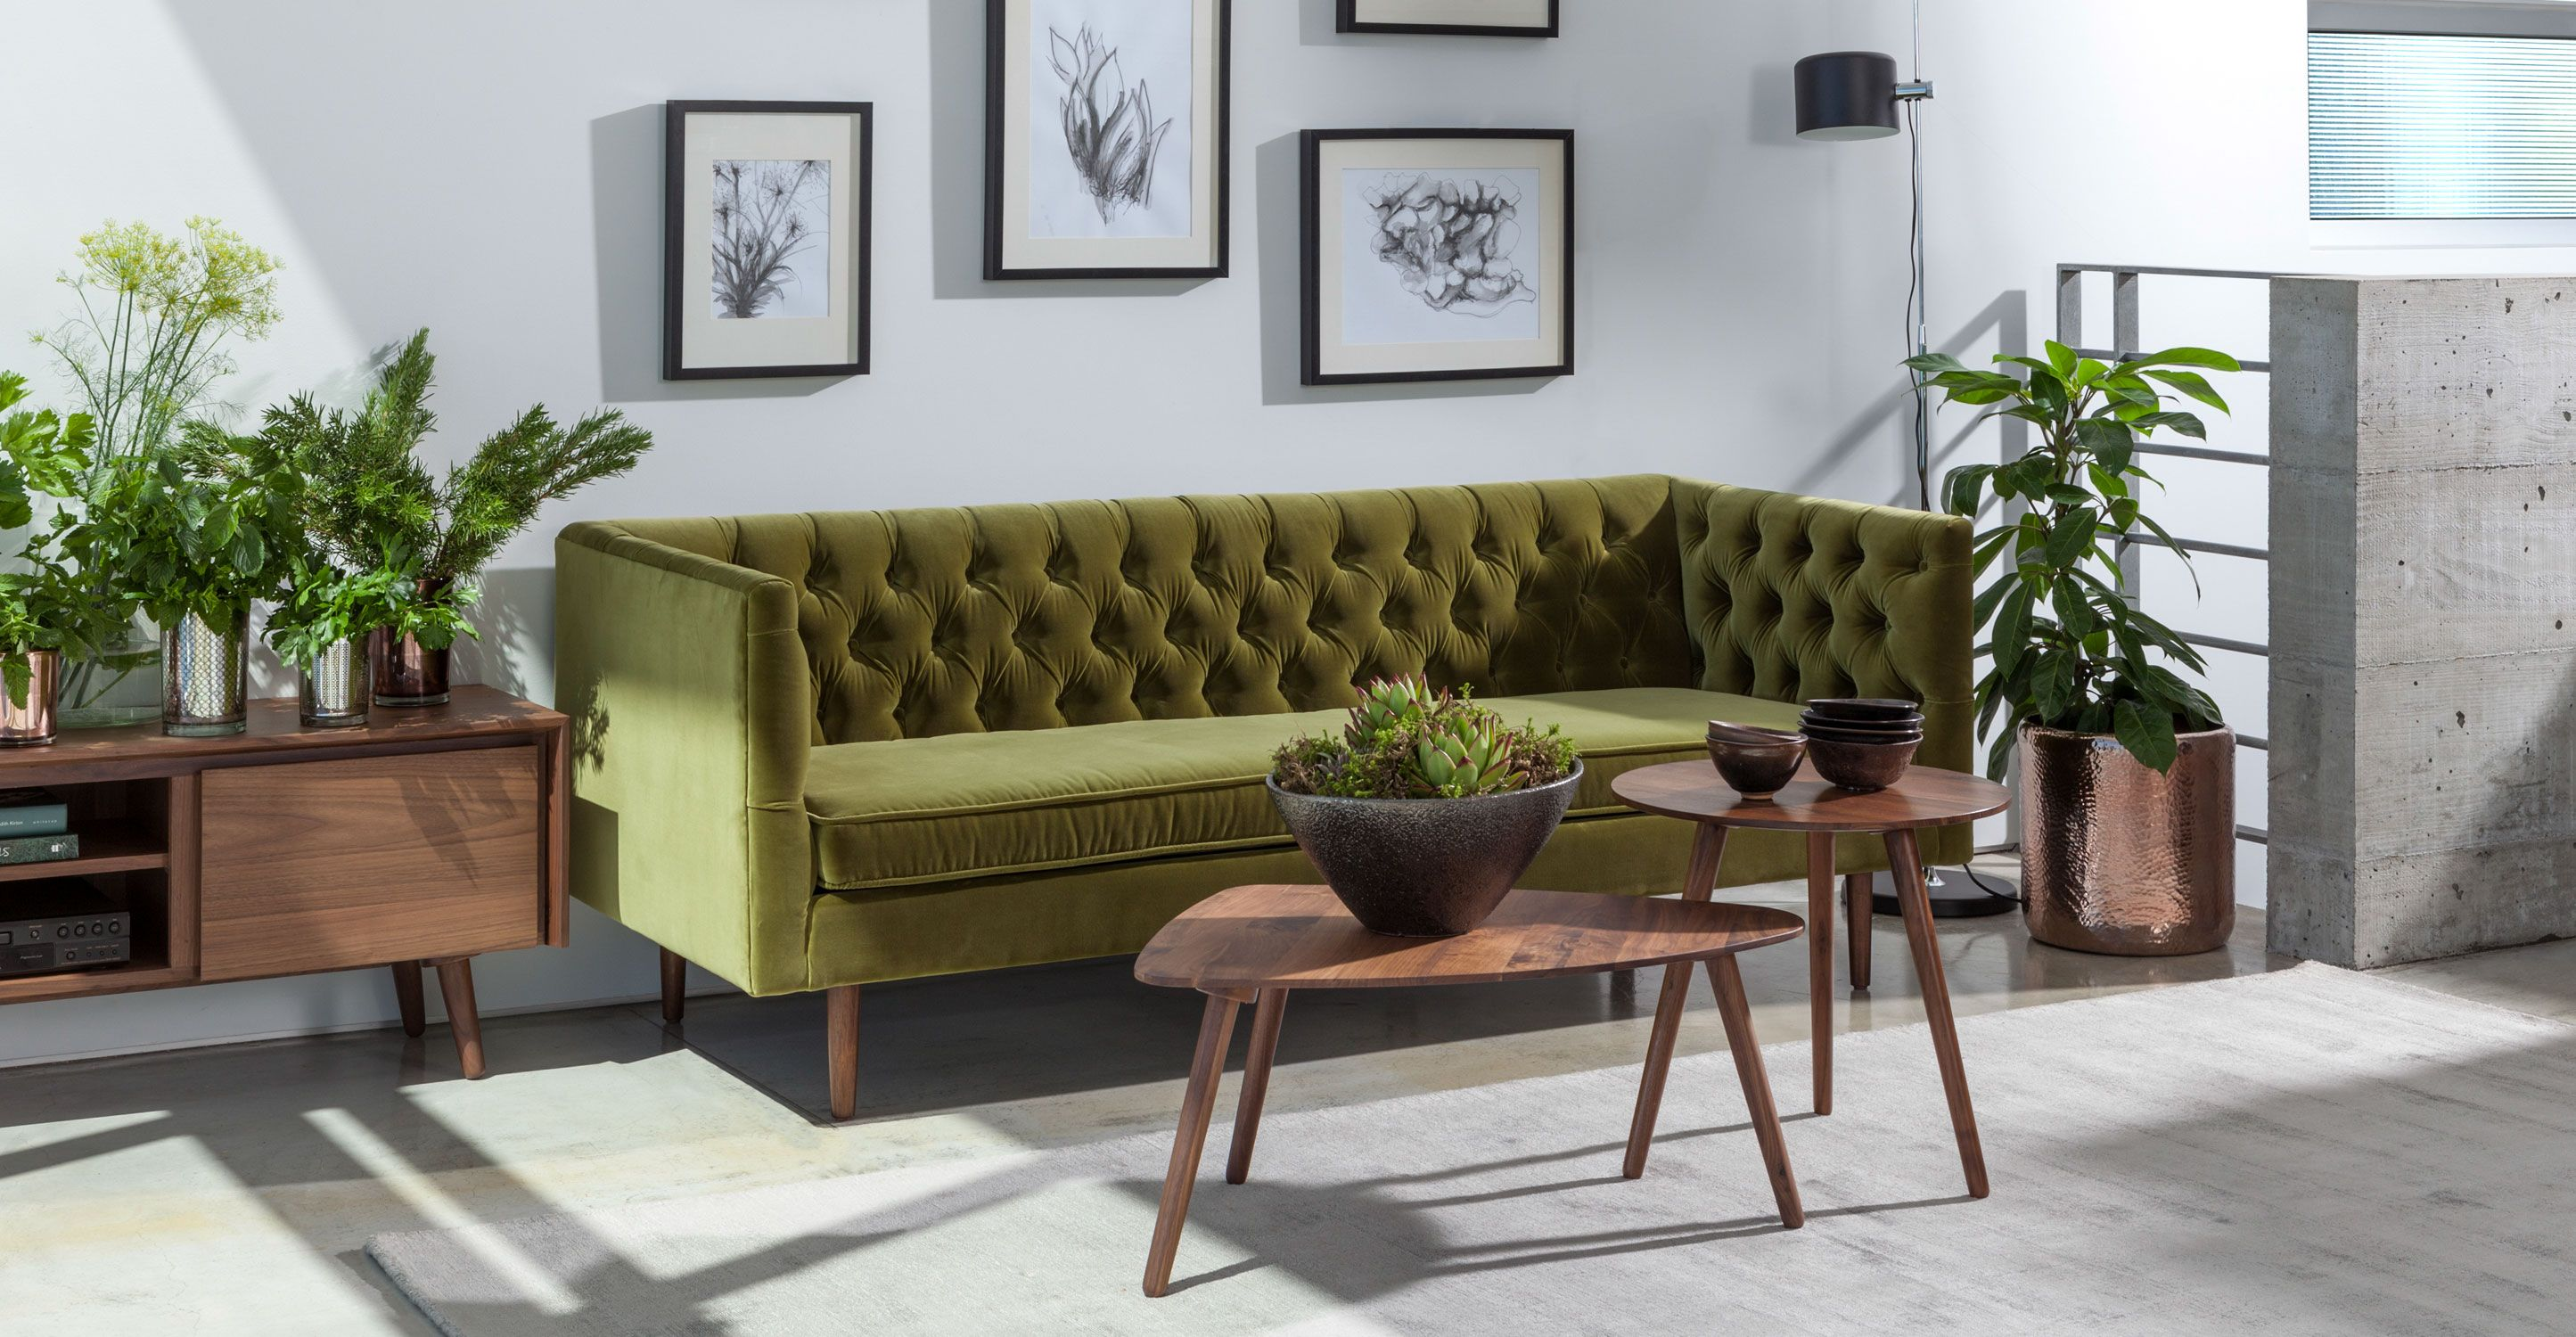 Chester Olive Green Sofa Sofas Article Modern Mid Century